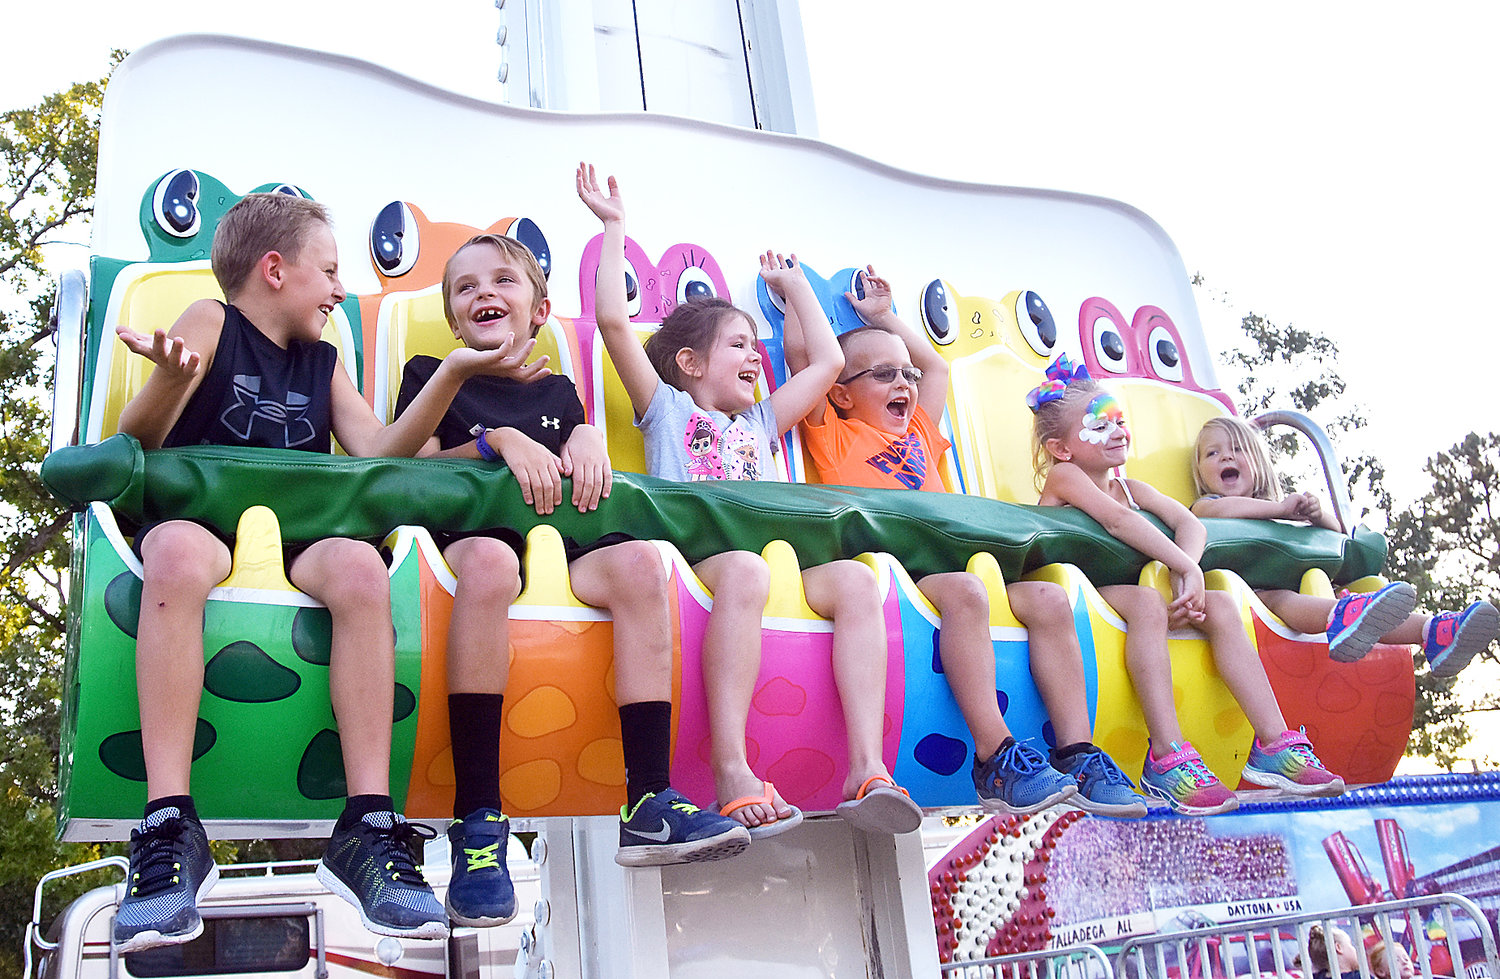 Six youth riders enjoy a fair ride at the 2018 Gasconade County Fair. The fair board voted Thursday, June 18, to not hold the 2020 Gasconade County Fair due to concerns with the coronavirus pandemic.